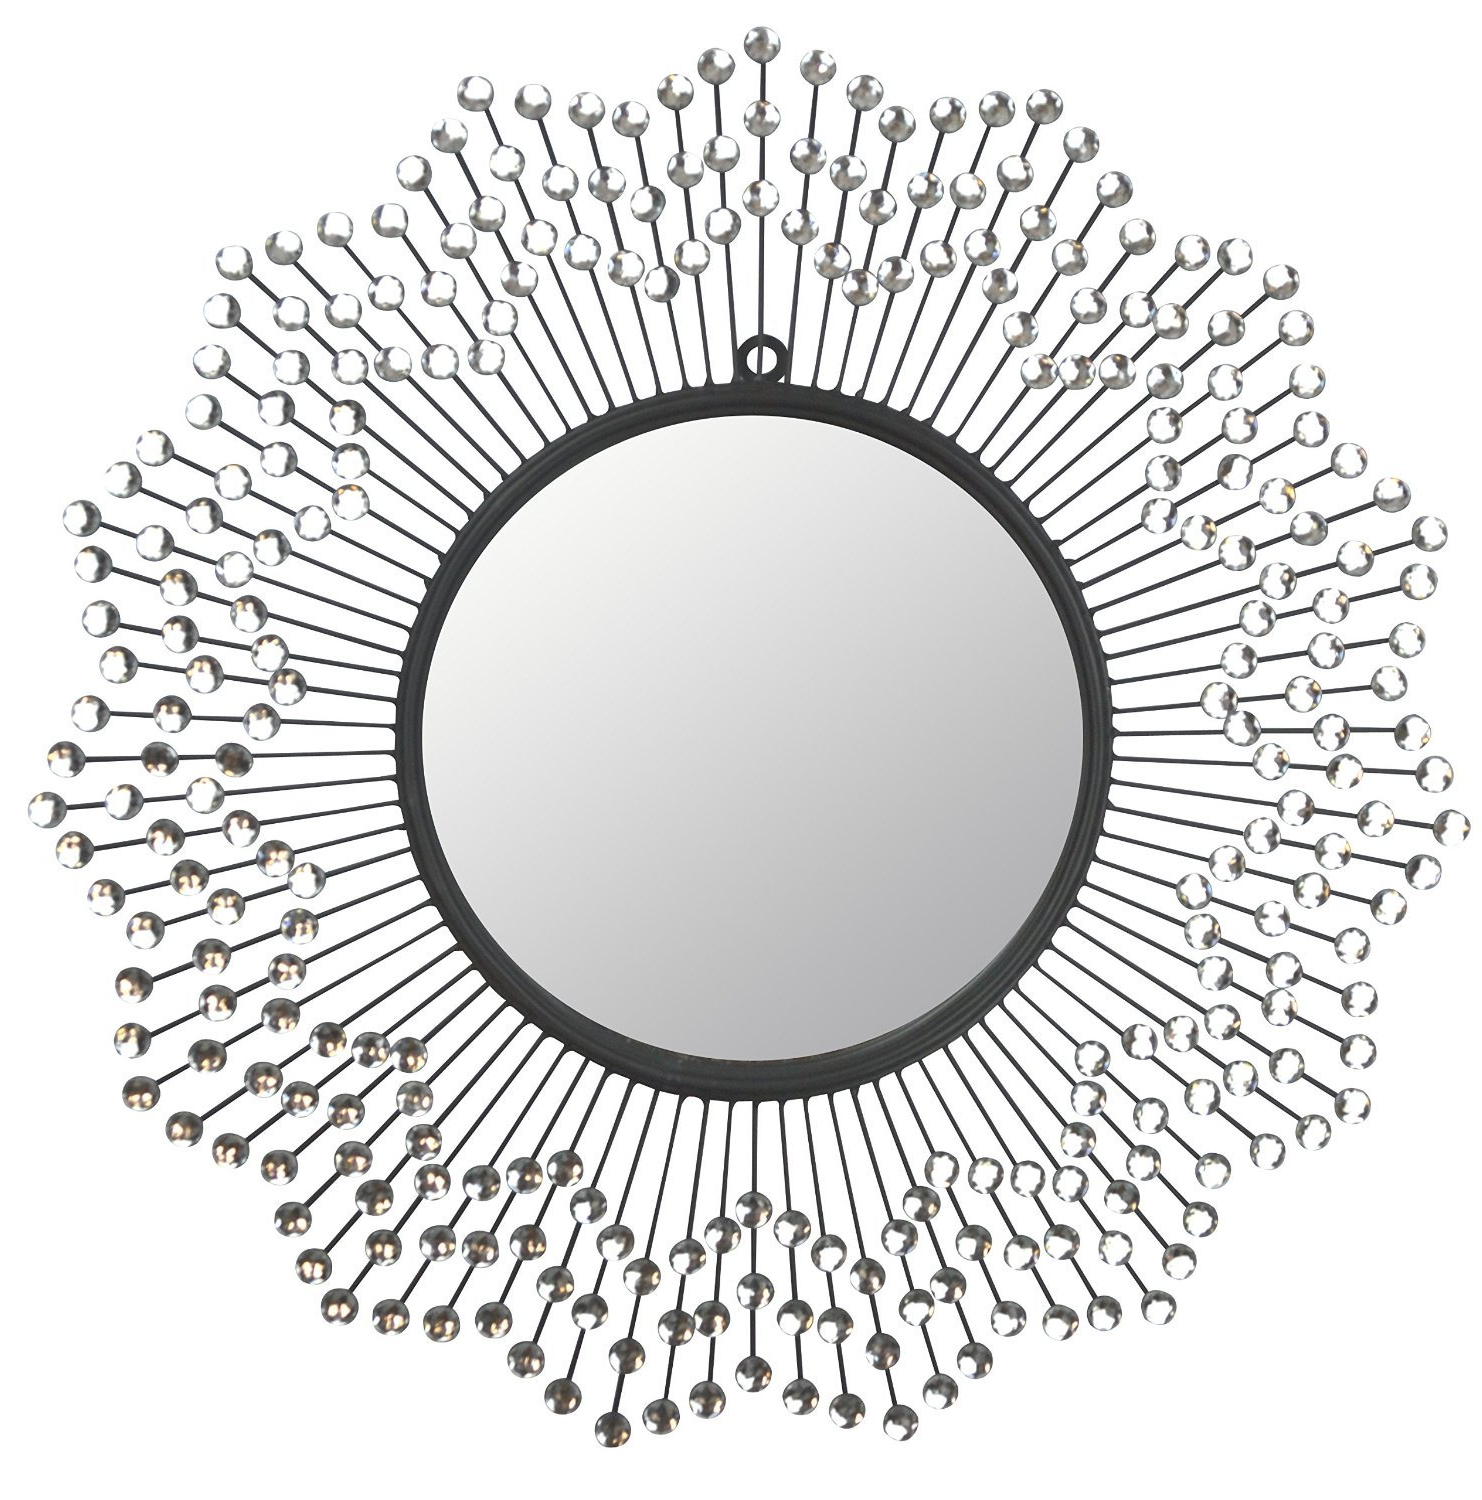 """Popular Lulu Décor, Celebration Metal Wall Mirror, Frame 24"""", Round Decorative Mirror For Living Room And Office Space Pertaining To Round Decorative Wall Mirrors (View 11 of 20)"""